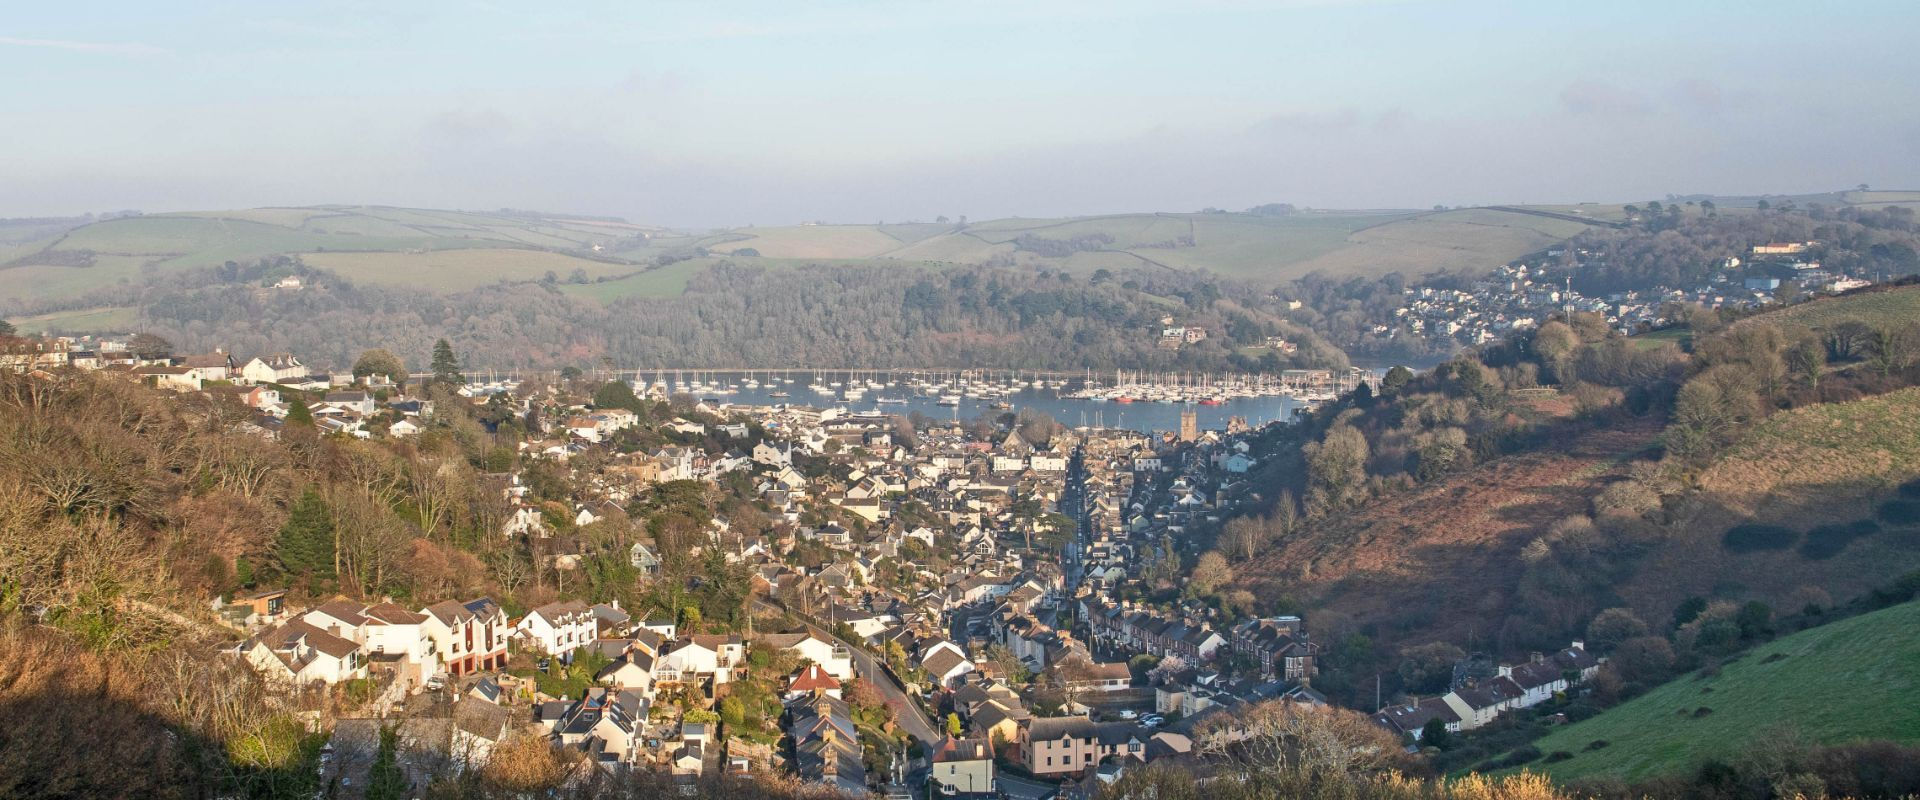 The view from Hangman's Cross in Dartmouth